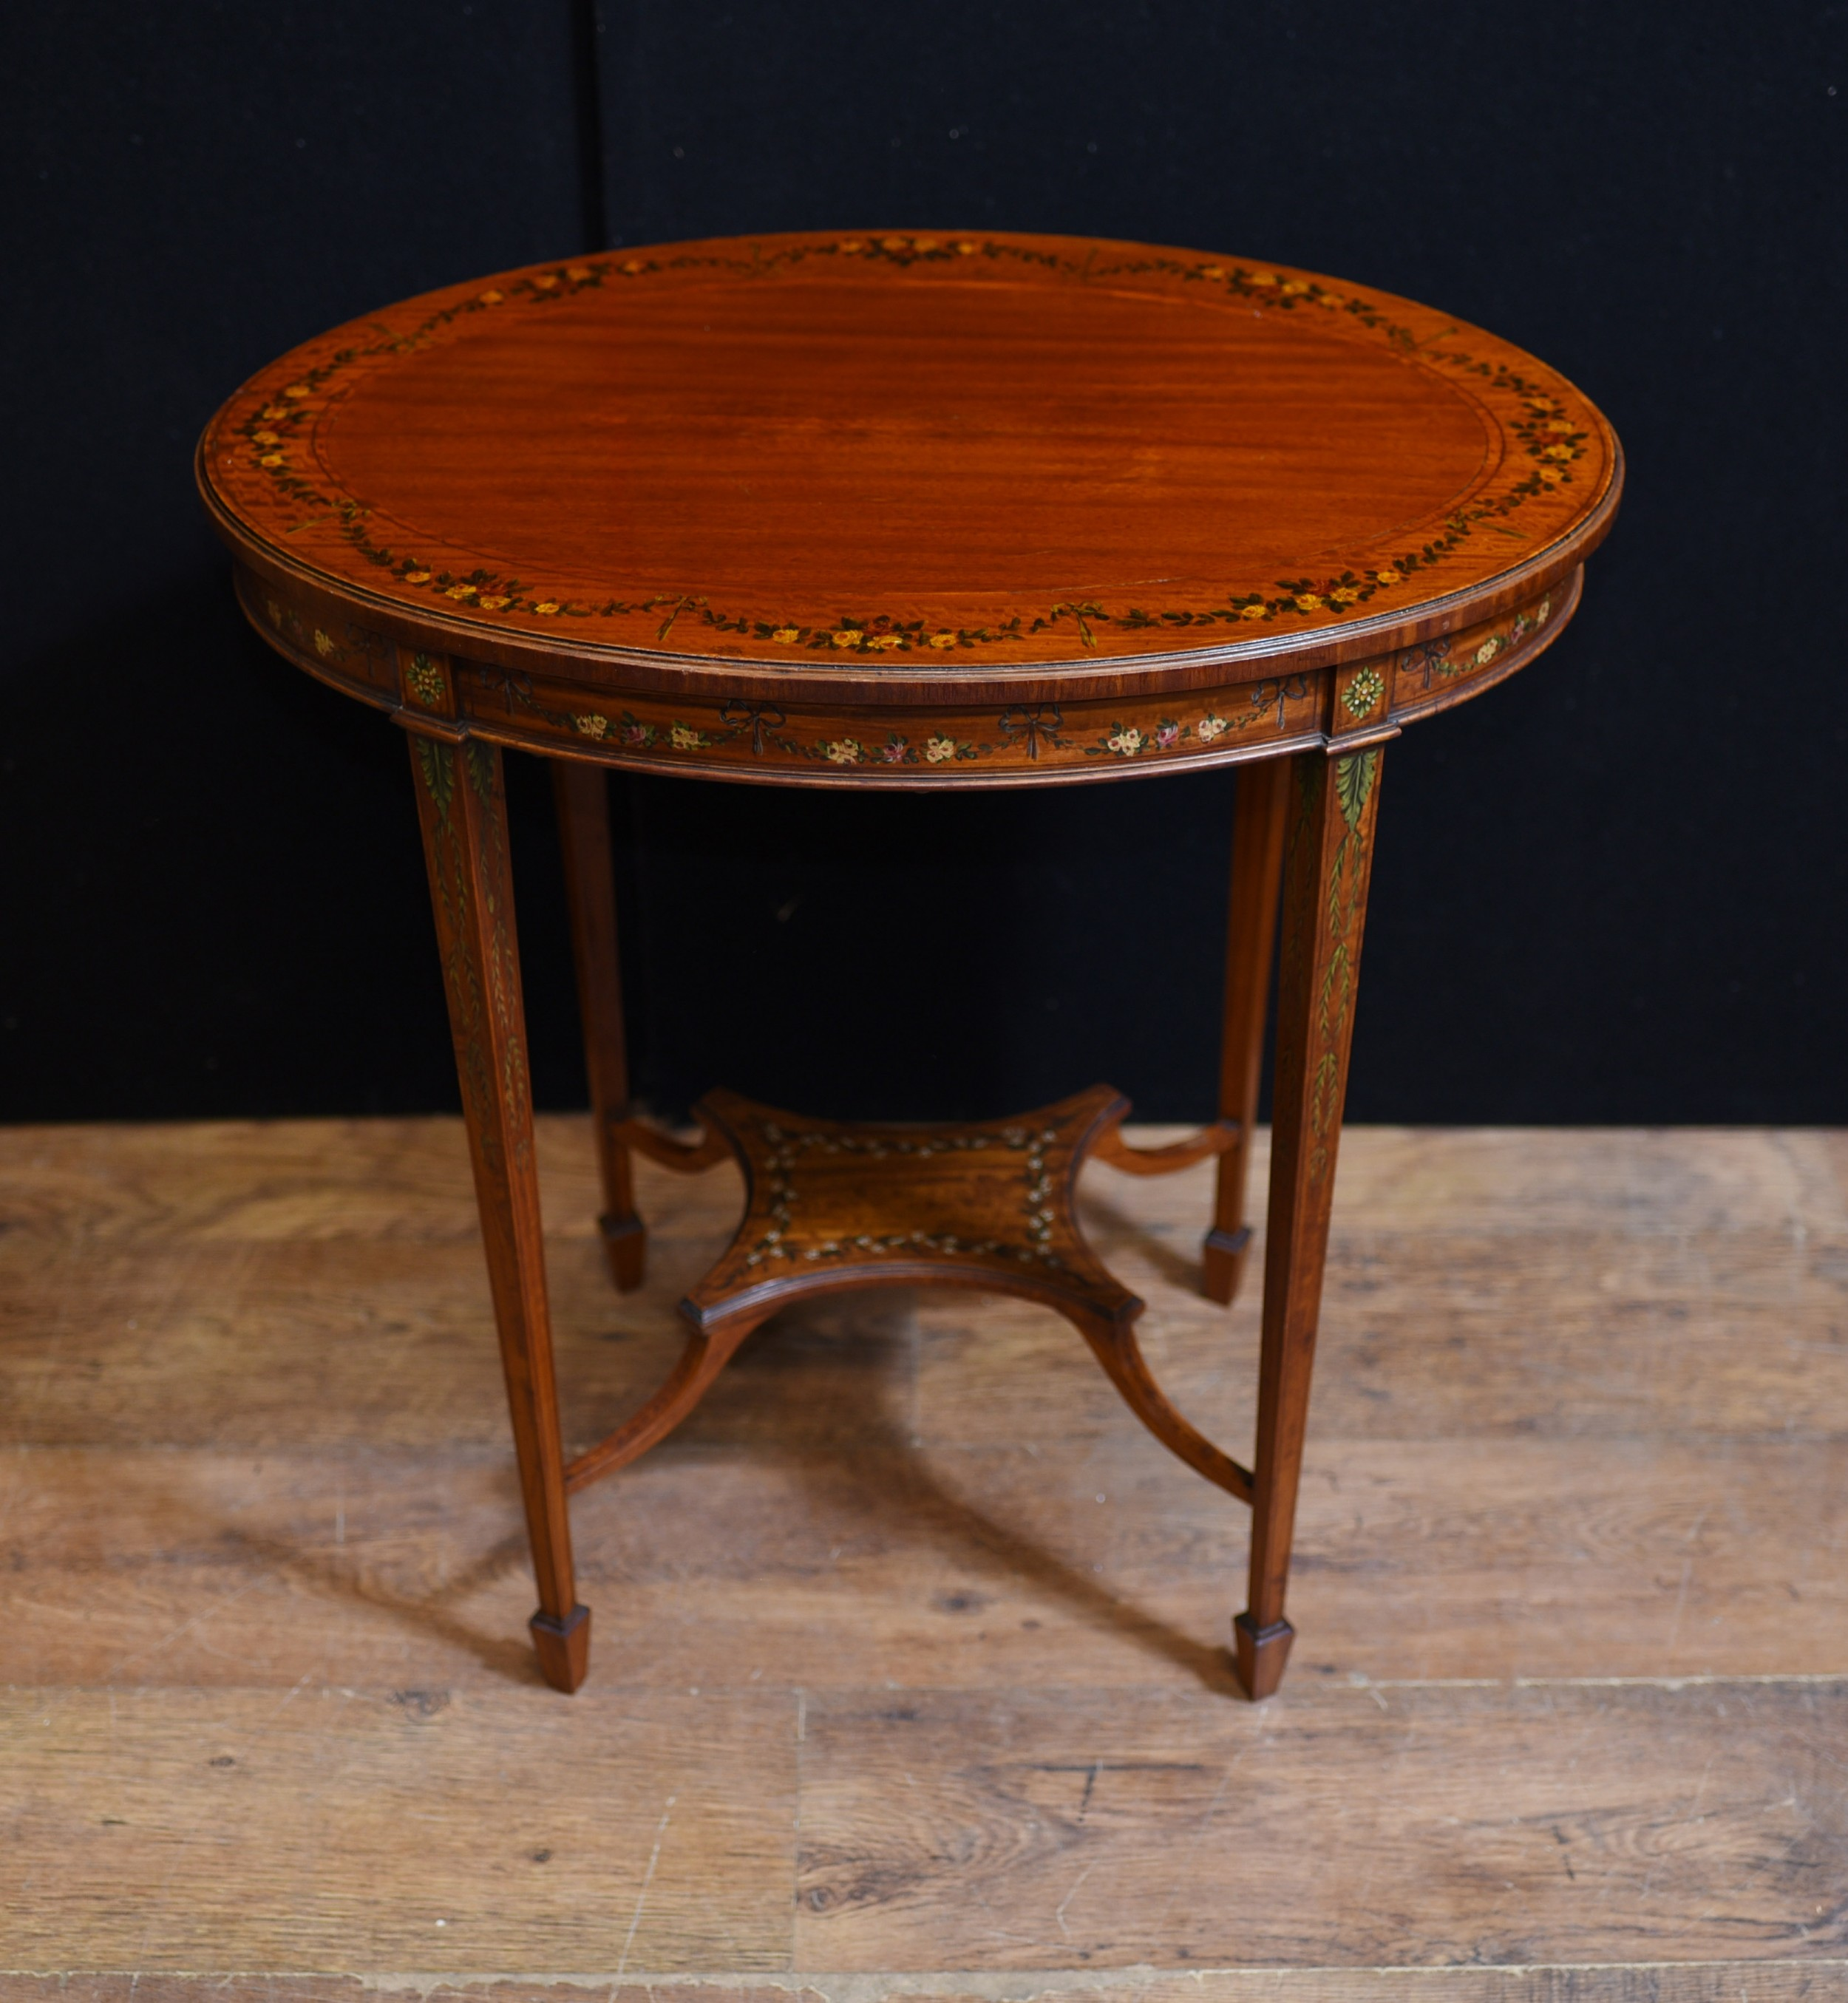 Oval Coffee Table Antique: Edwardian Painted Oval Side Table Cocktail Tables